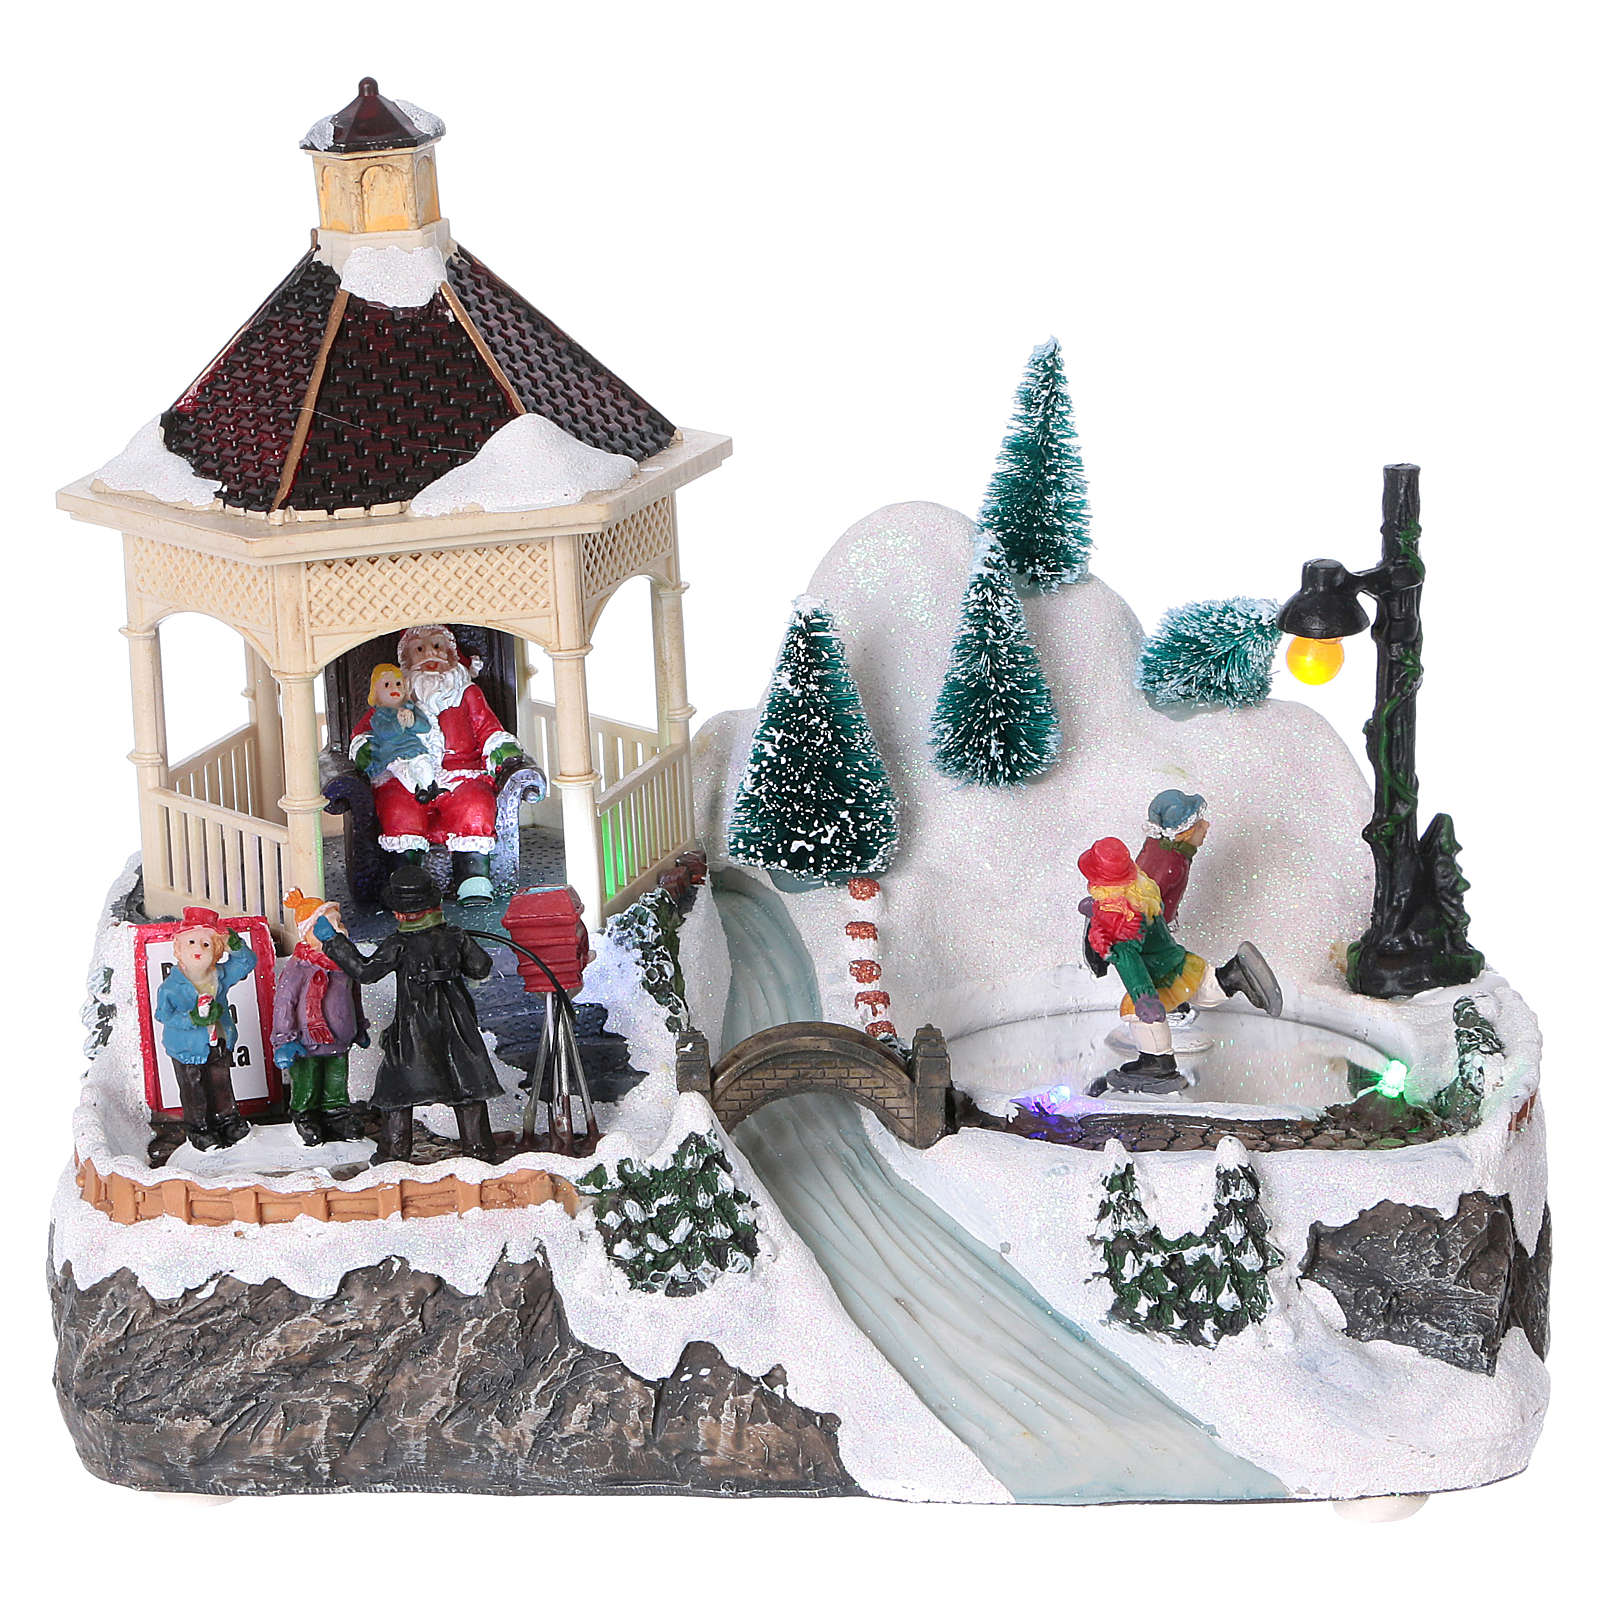 Illuminated Christmas village with animated ice skaters and Santa Claus 20x25x16 cm 3